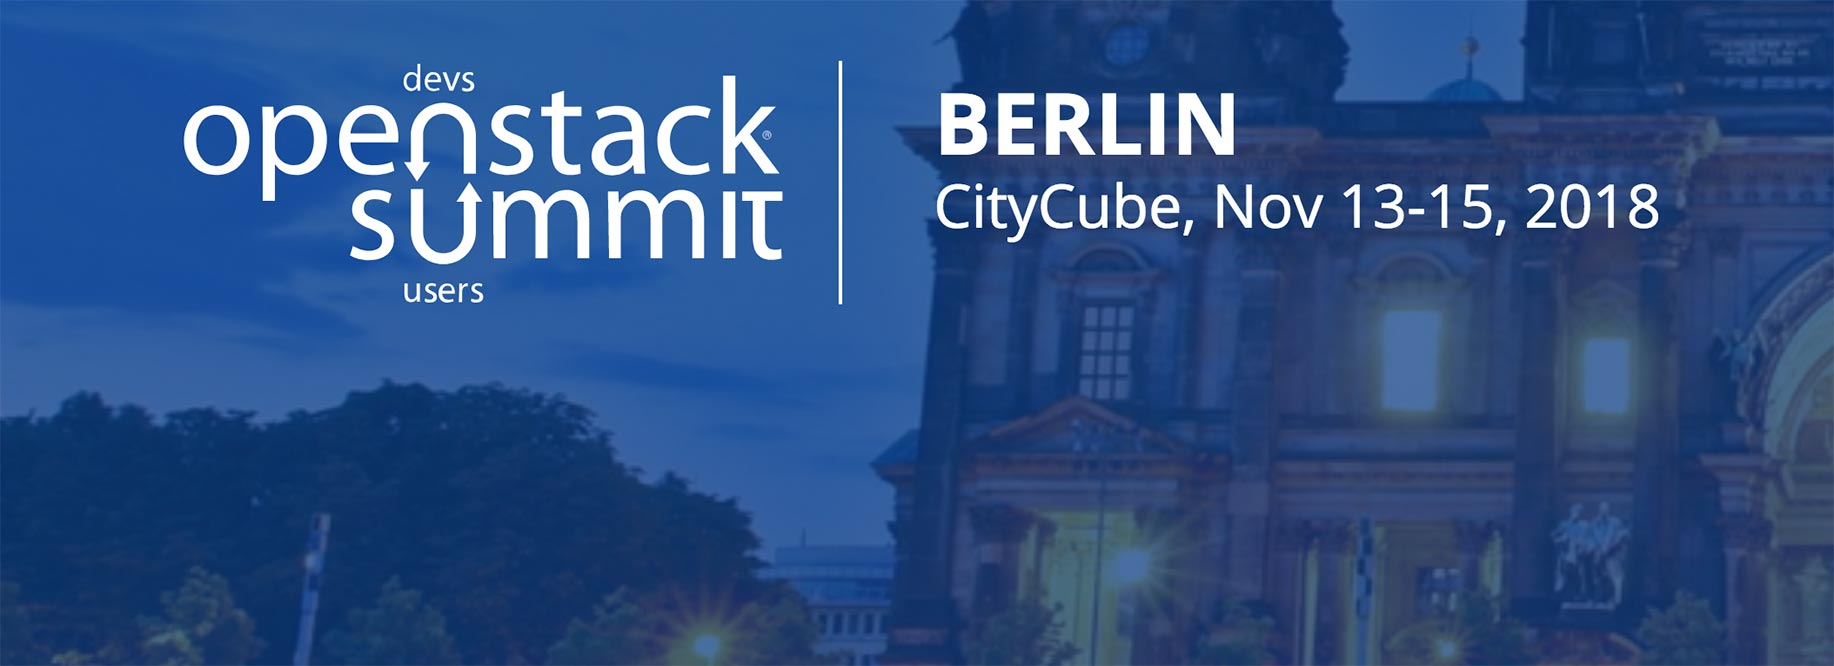 OpenStack_Summit_Berlin_official